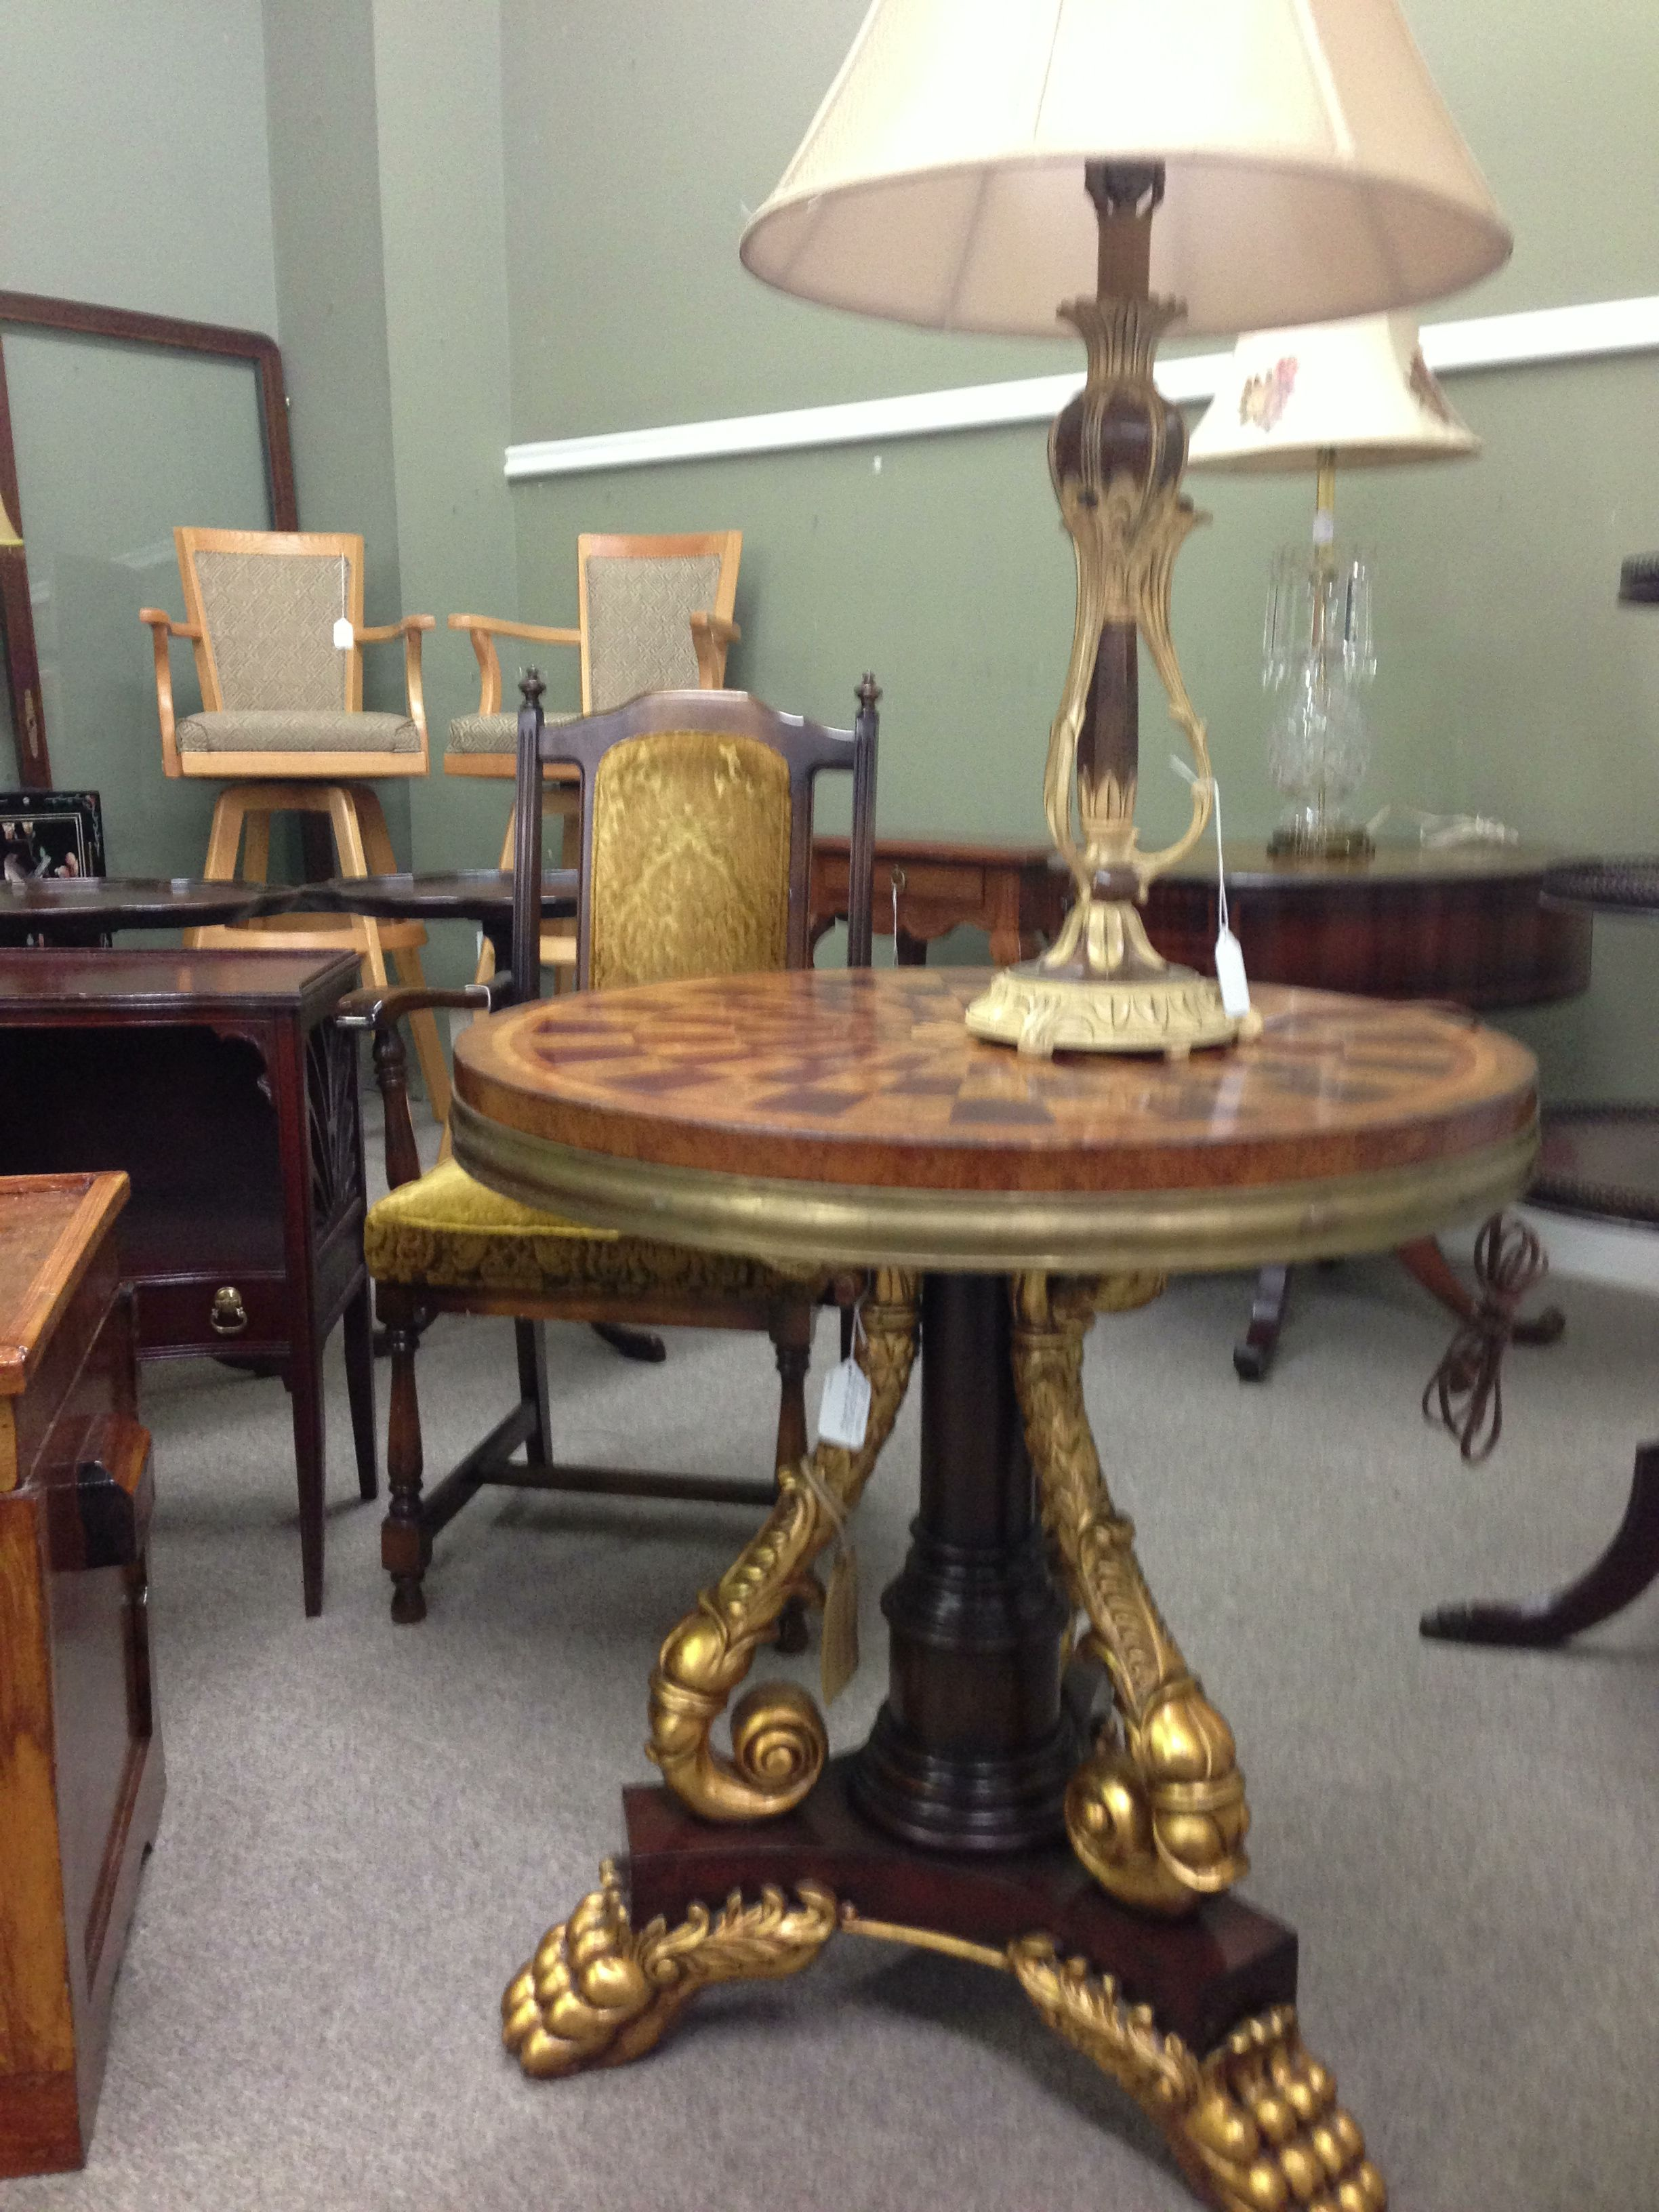 Antique Reproduction Century Furniture at milesantiquemall